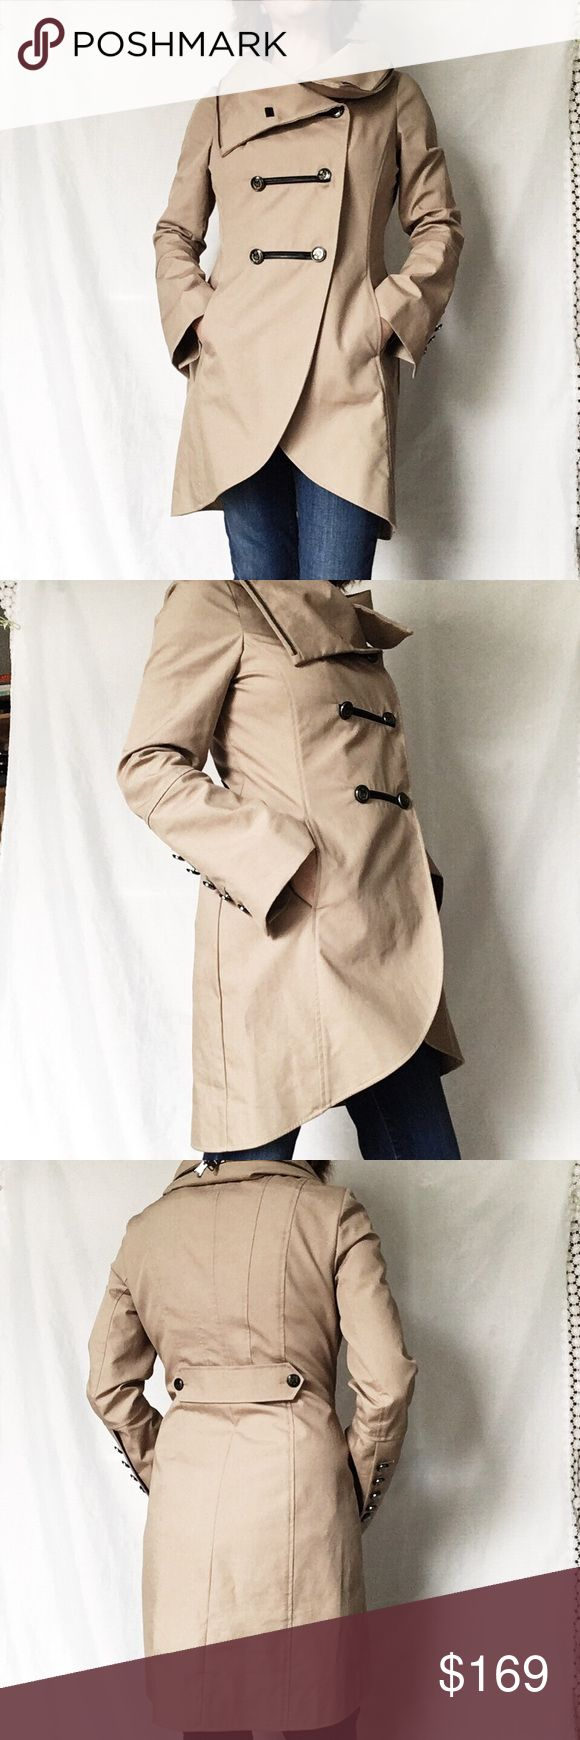 Mackage double breasted trench. Like new. Size M Feminine fitted style with flattering rounded hem.  Collar can be worn high or low.  Hidden hood in collar.  Slim fit.  Model is size 8-10. Mackage Jackets & Coats Trench Coats